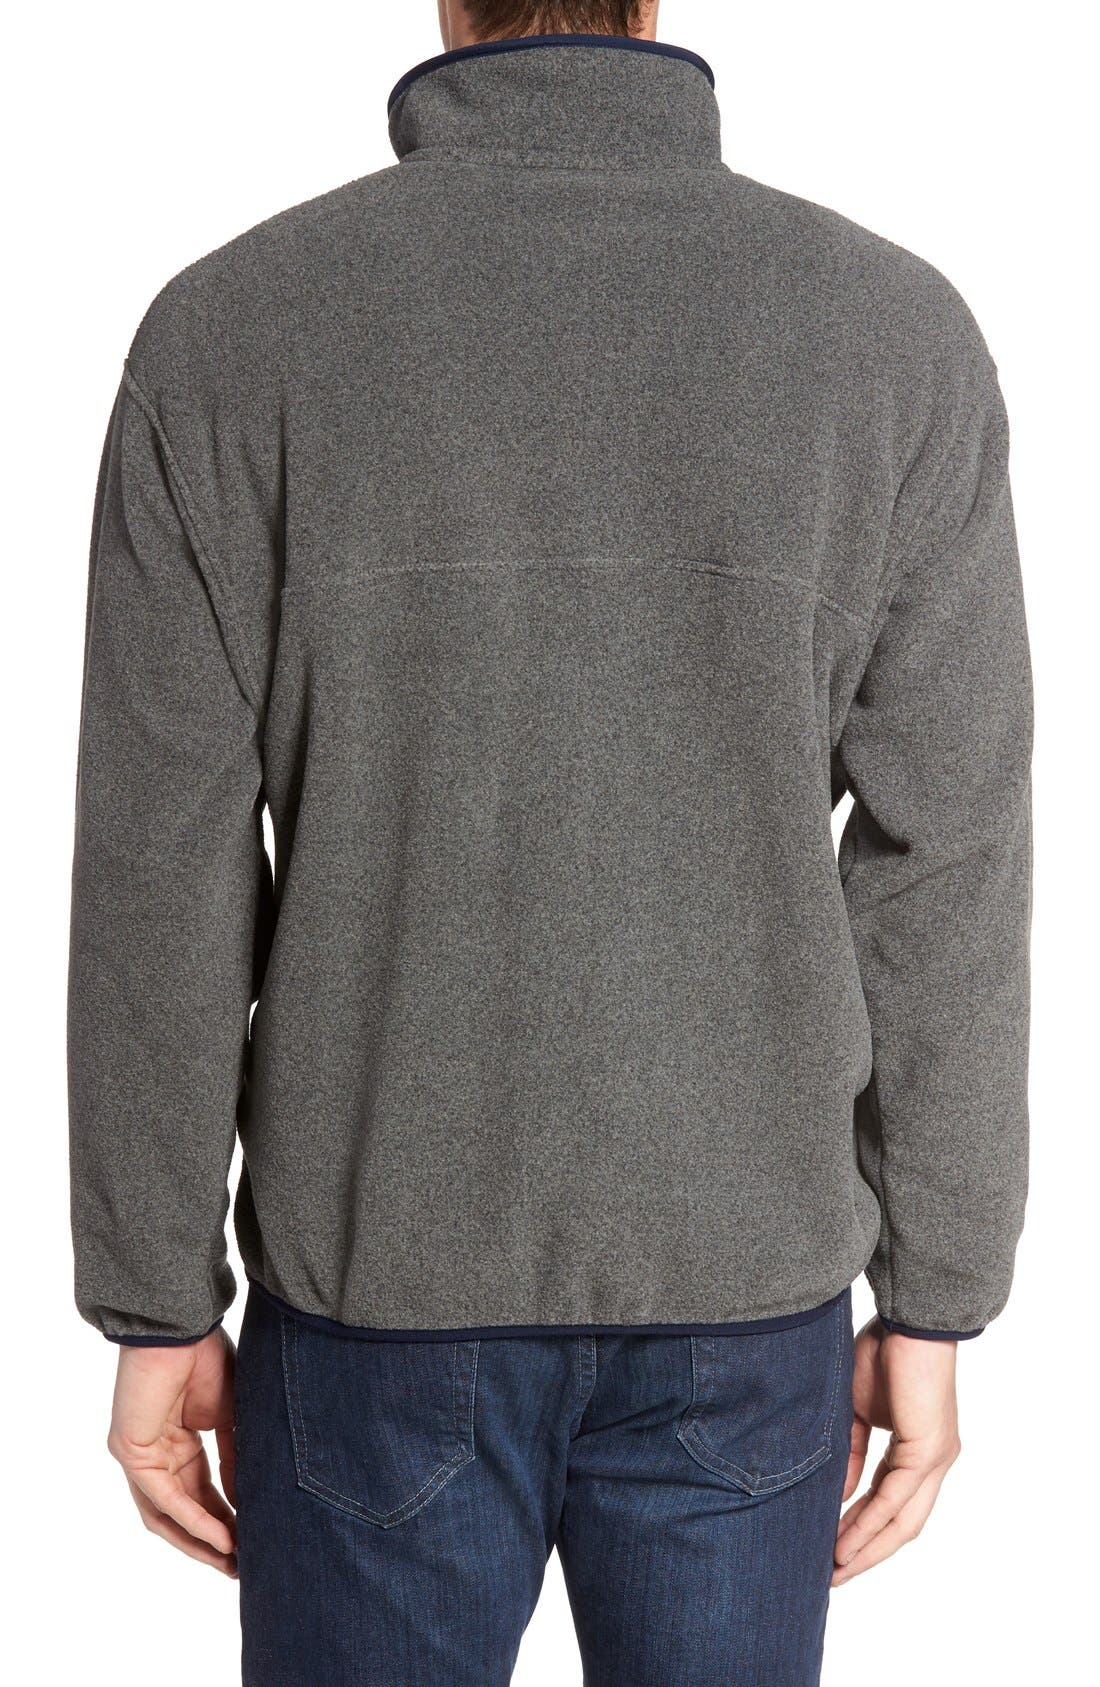 Synchilla<sup>®</sup> Snap-T<sup>®</sup> Pullover,                             Alternate thumbnail 4, color,                             Nickel/ Navy Blue